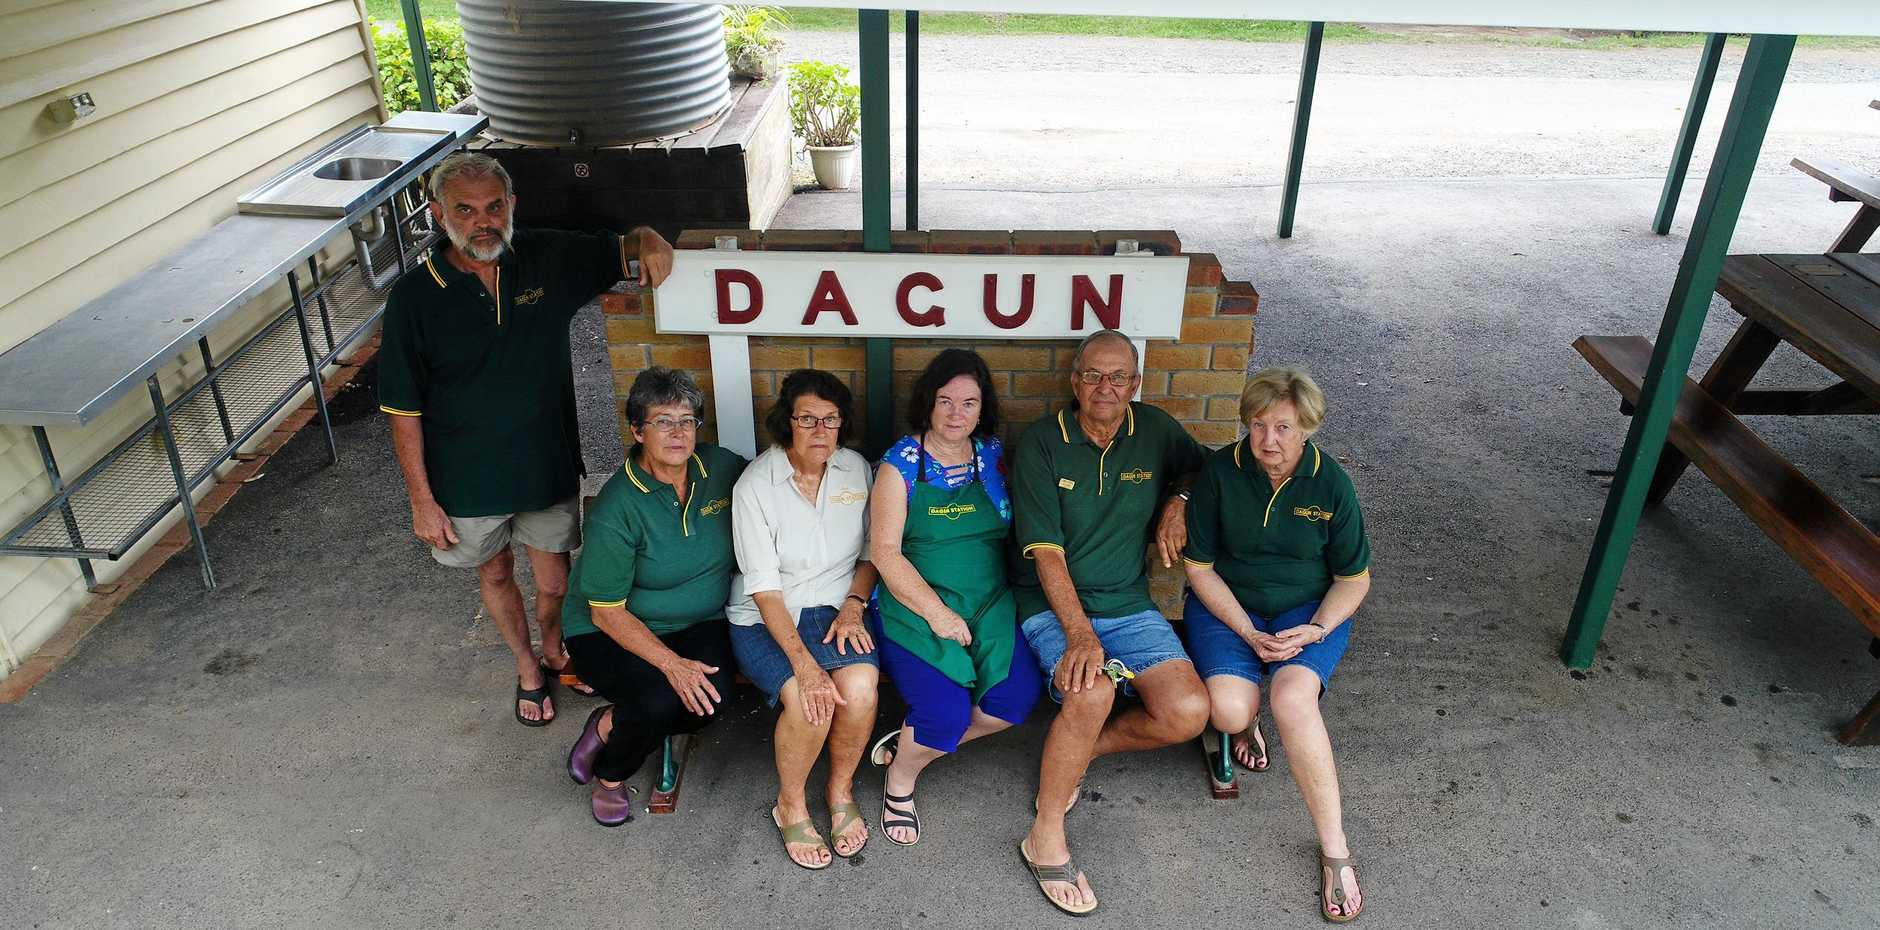 DAGUN DISCONTENT: Trevor Armstrong, Elaine Bradley, Sue Ferris, Sheila Kath, Geoff and Narelle Harvey are not satisfied with their treatment by the Rattler Railway Company or its official explanation.